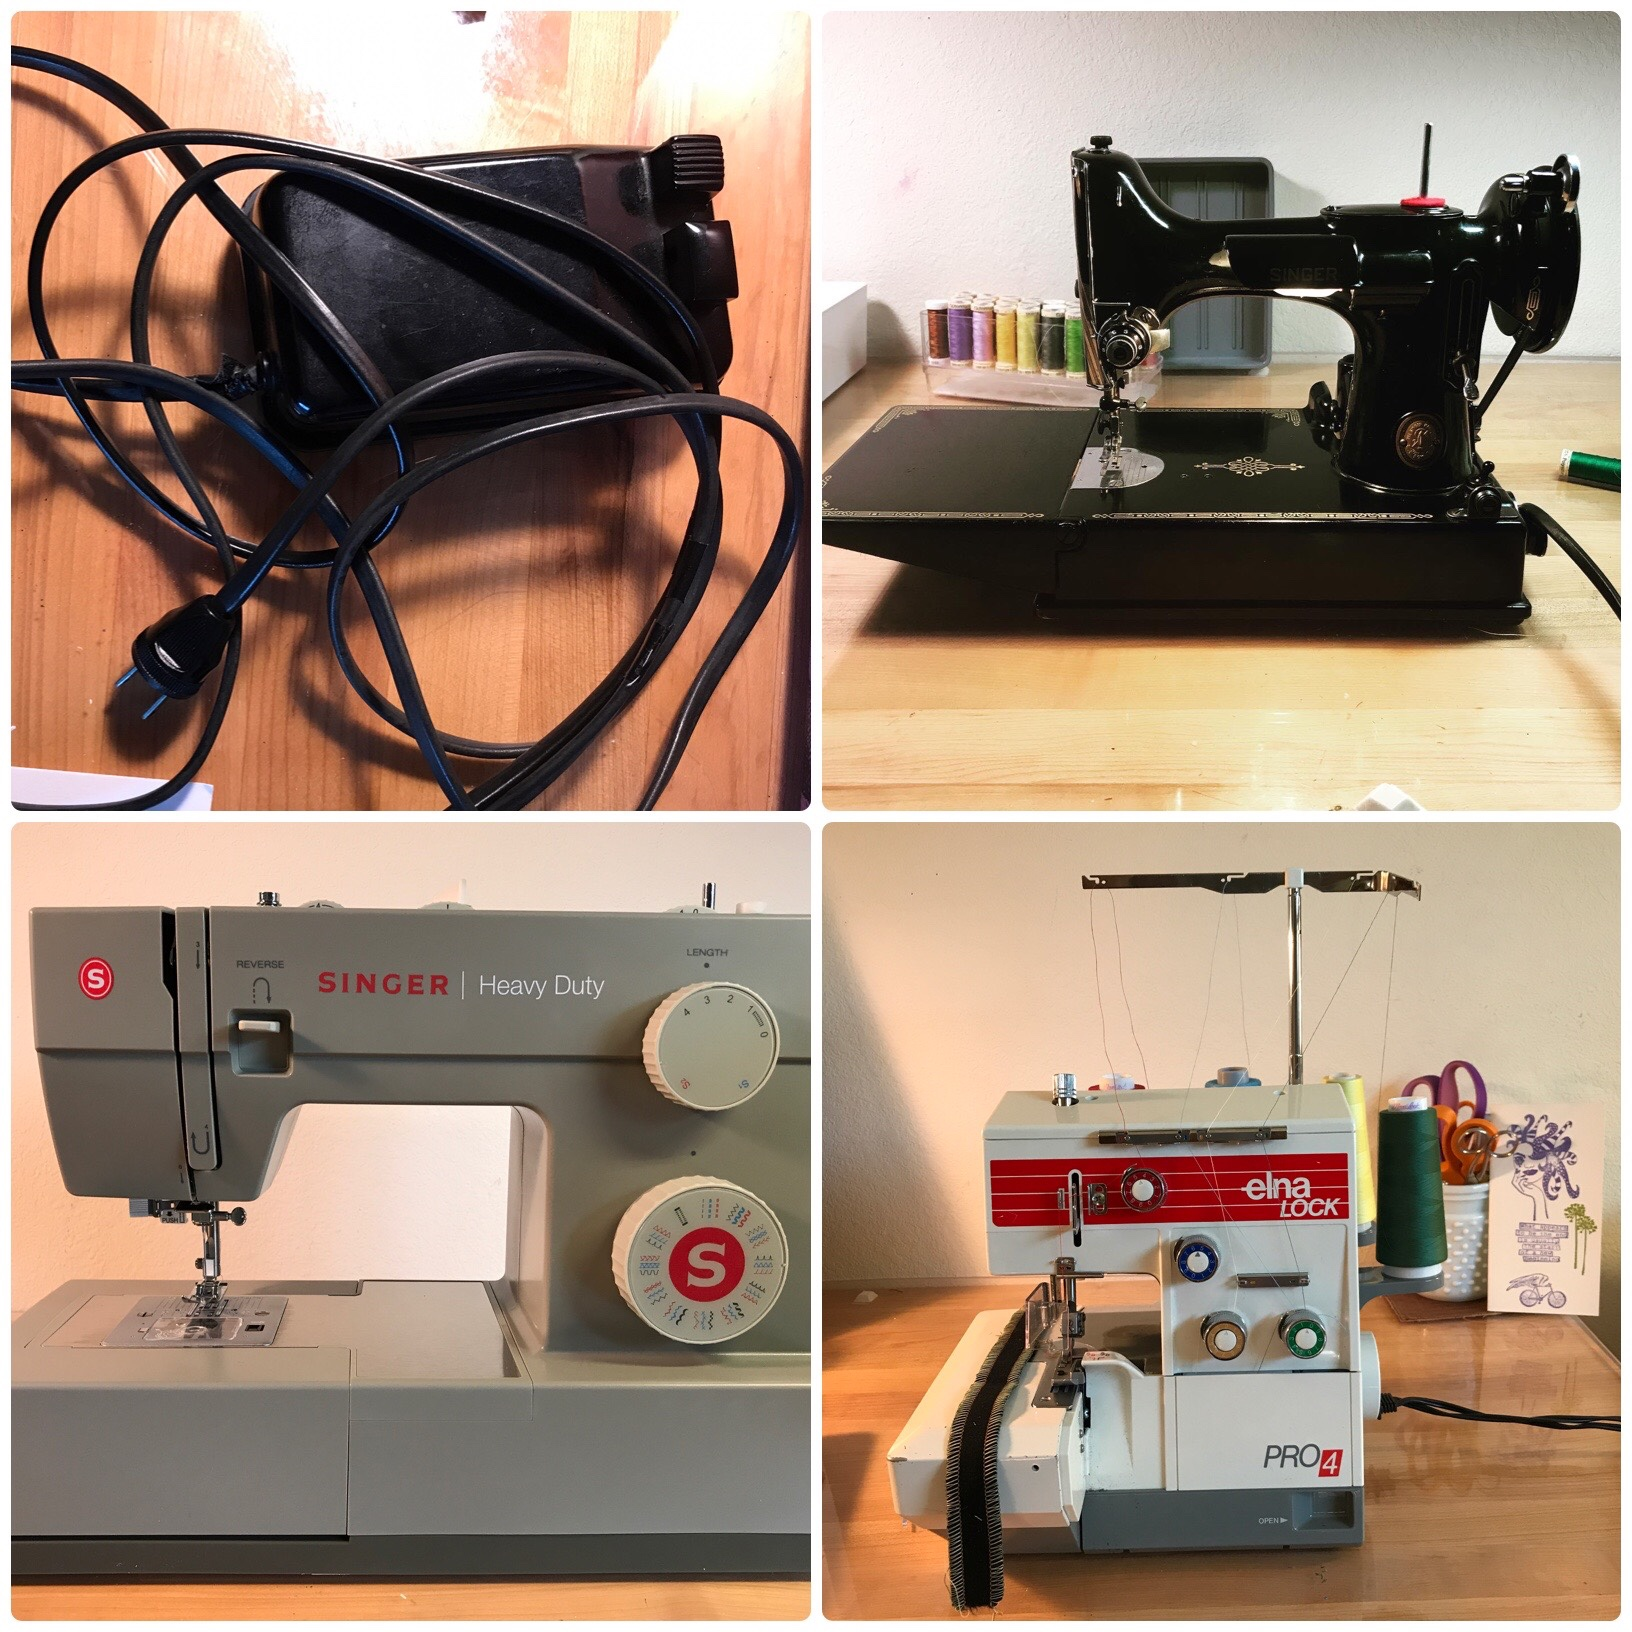 Sewing Equipment: a Singer Featherweight sewing machine and foot controller, a Singer Heavy Duty sewing machine and an Elna Lock serger